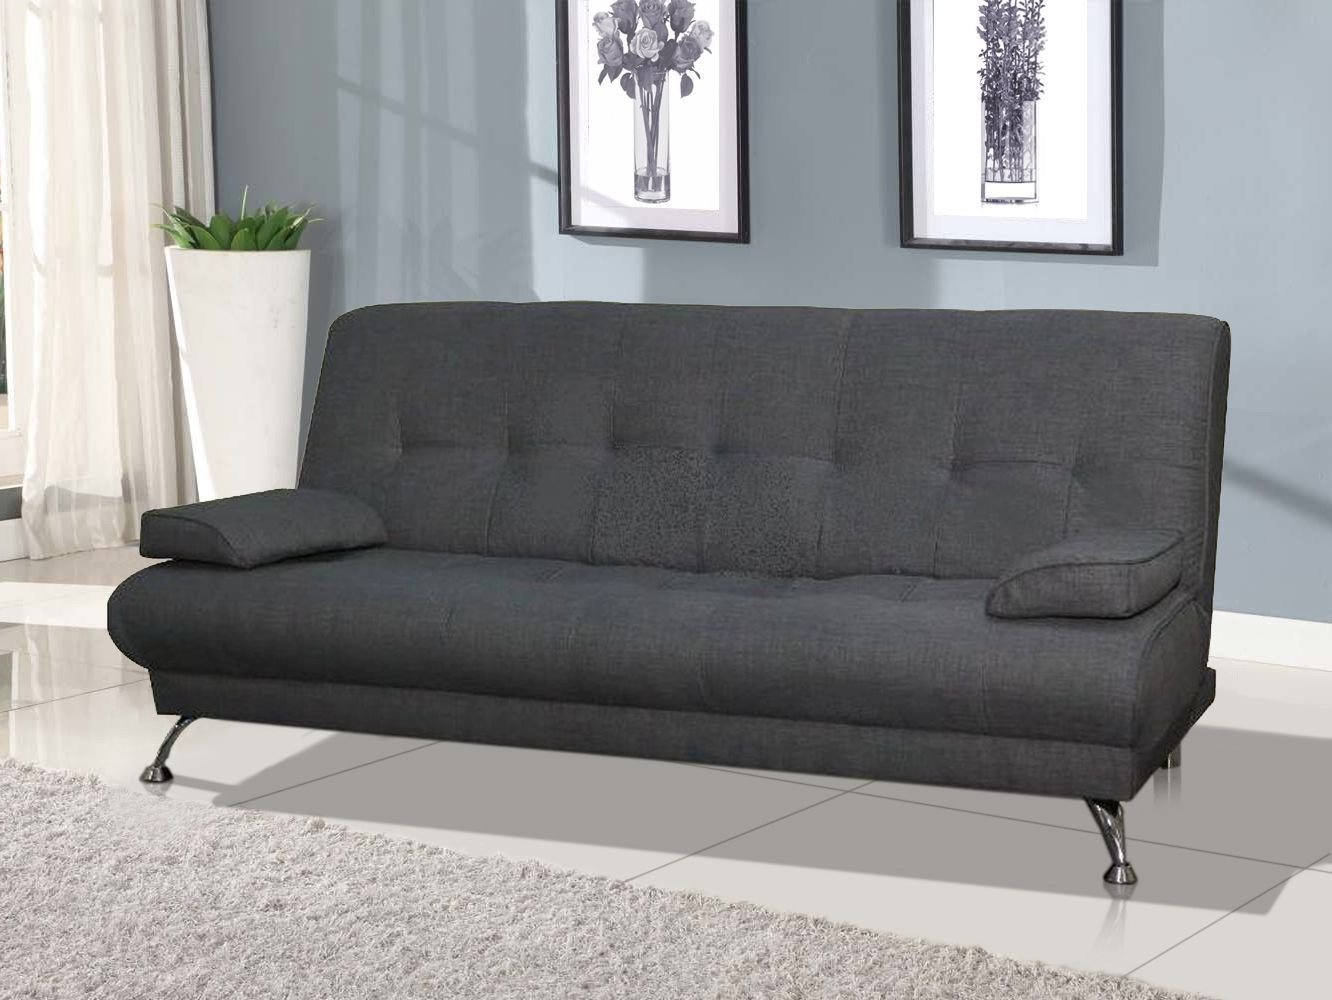 Milan Venice Sofa Bed in Grey Fabric S&S Furnishings LTD